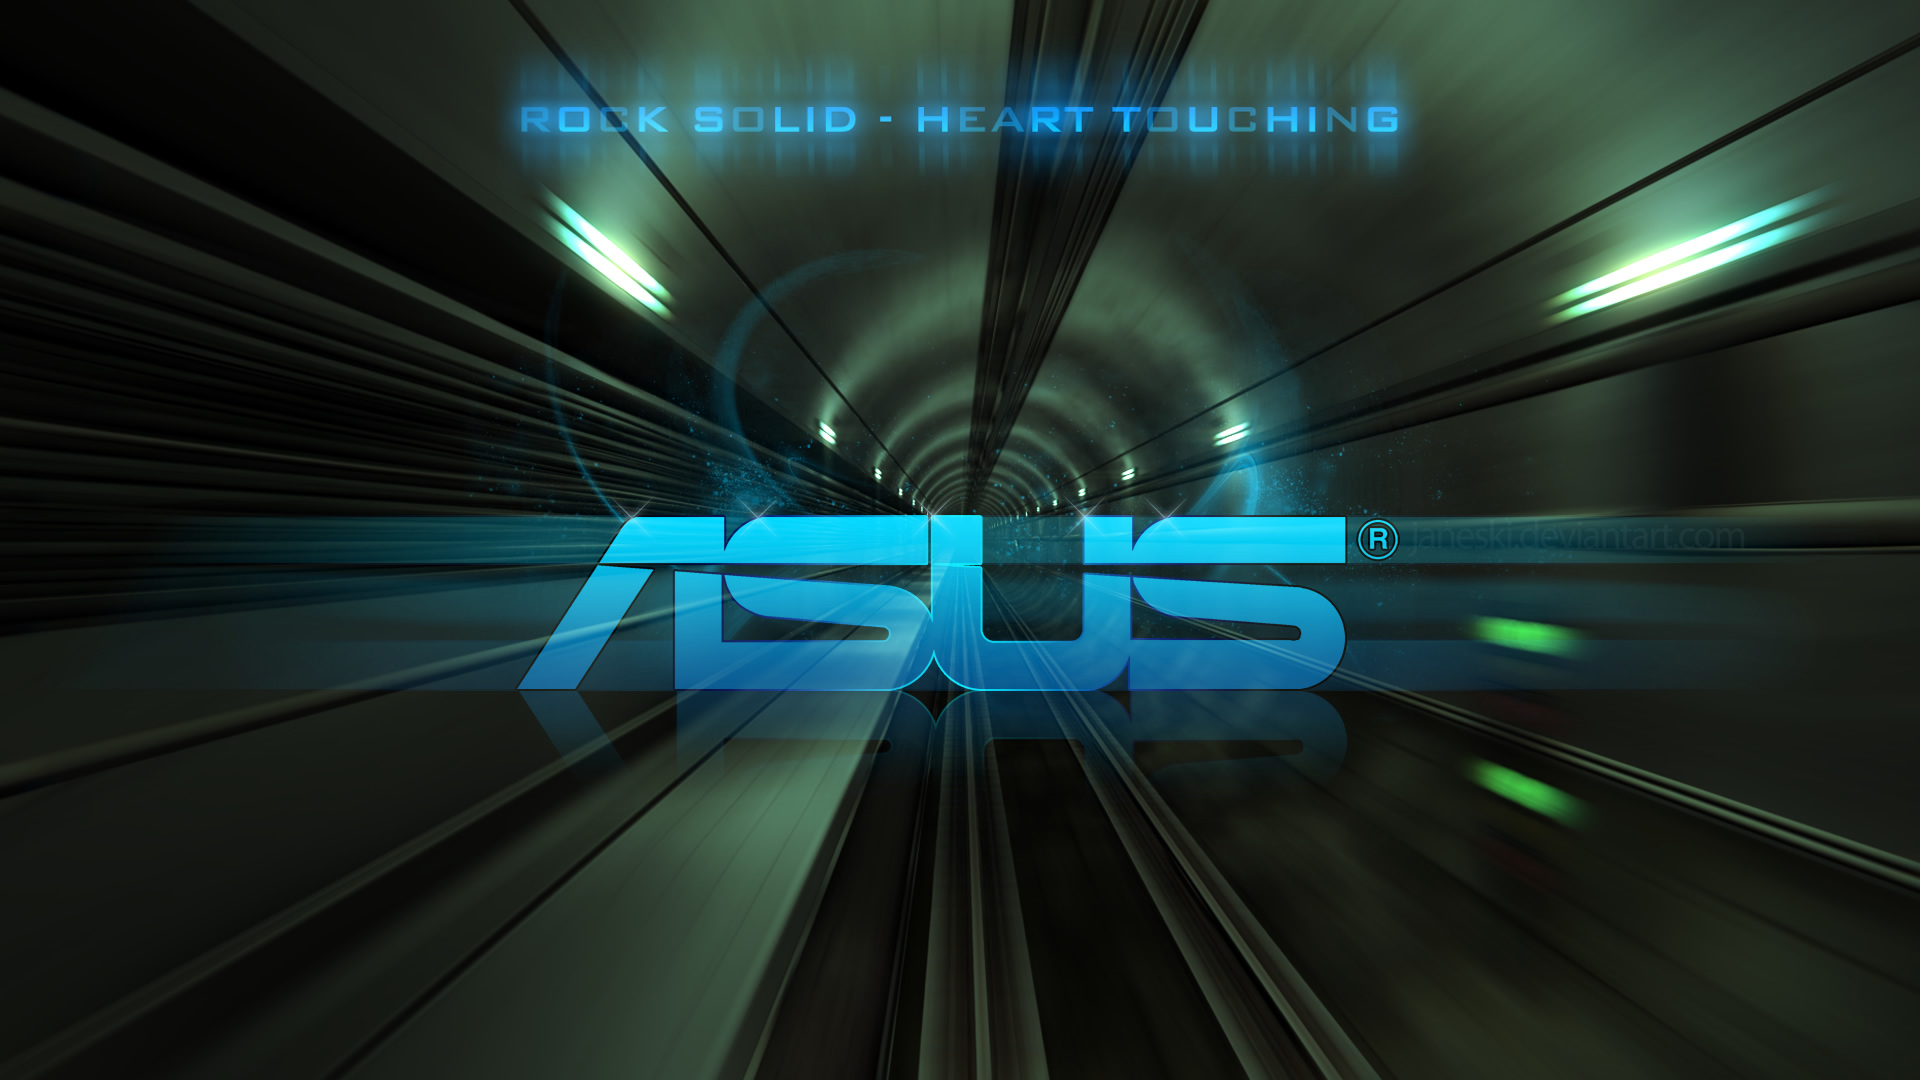 Asus Black Wallpaper: Asus HD Wallpapers, Pictures, Images